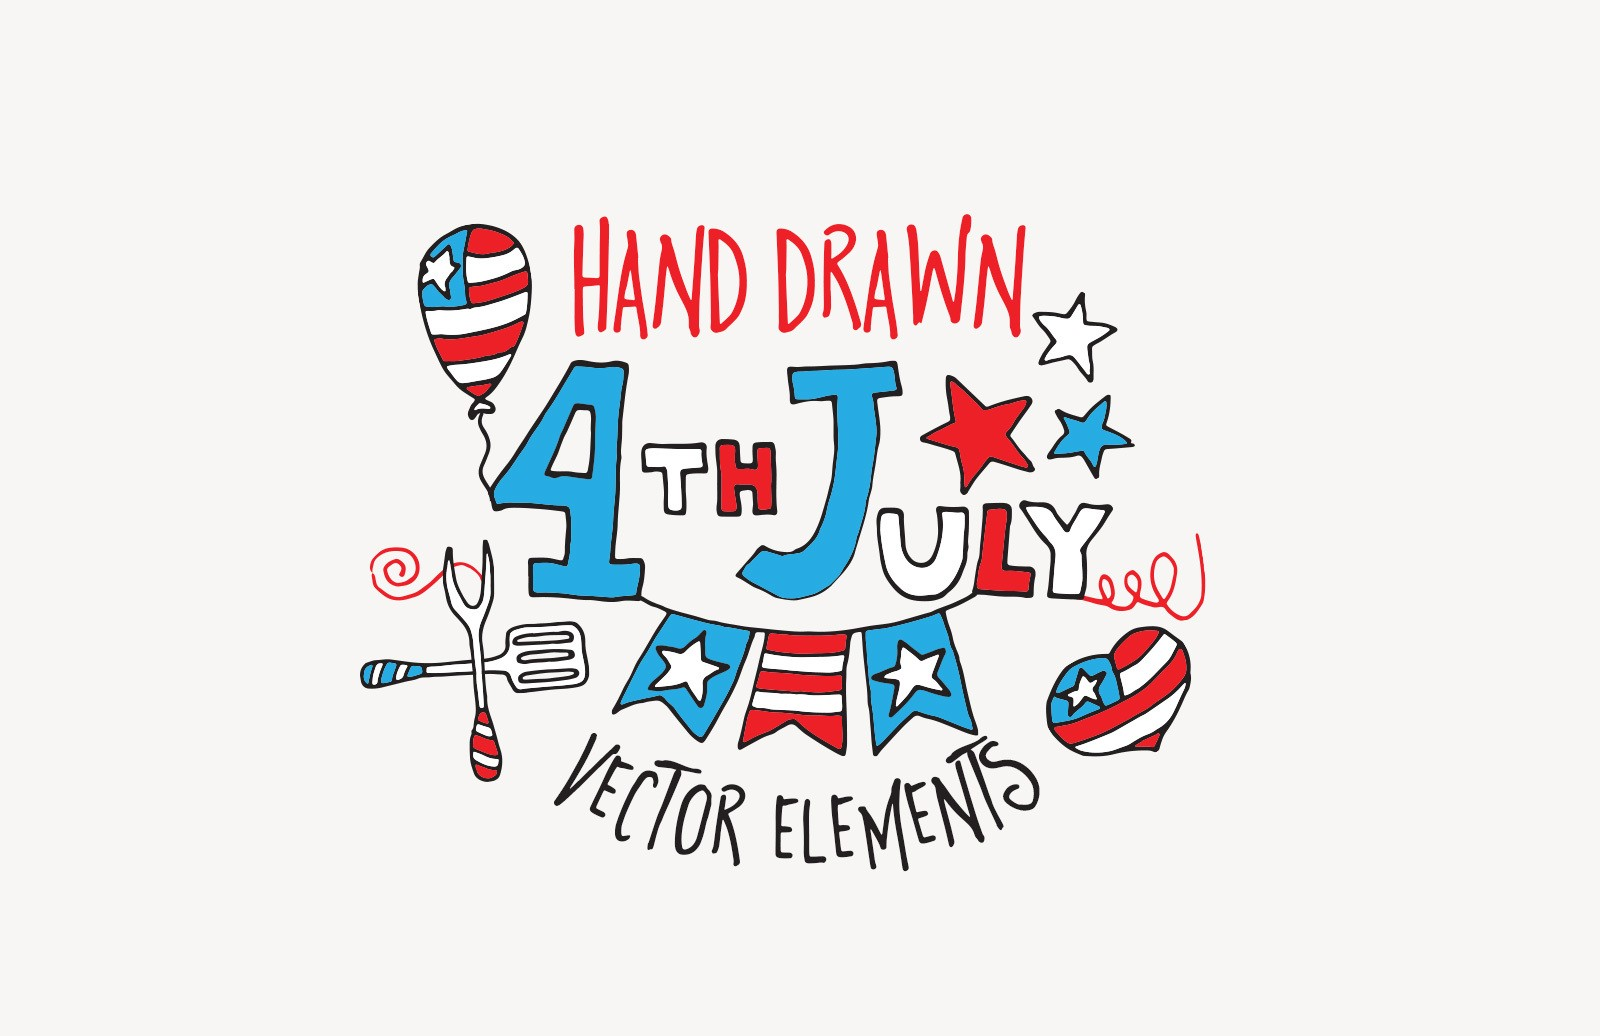 Hand Drawn 4th July Vector Elements 1